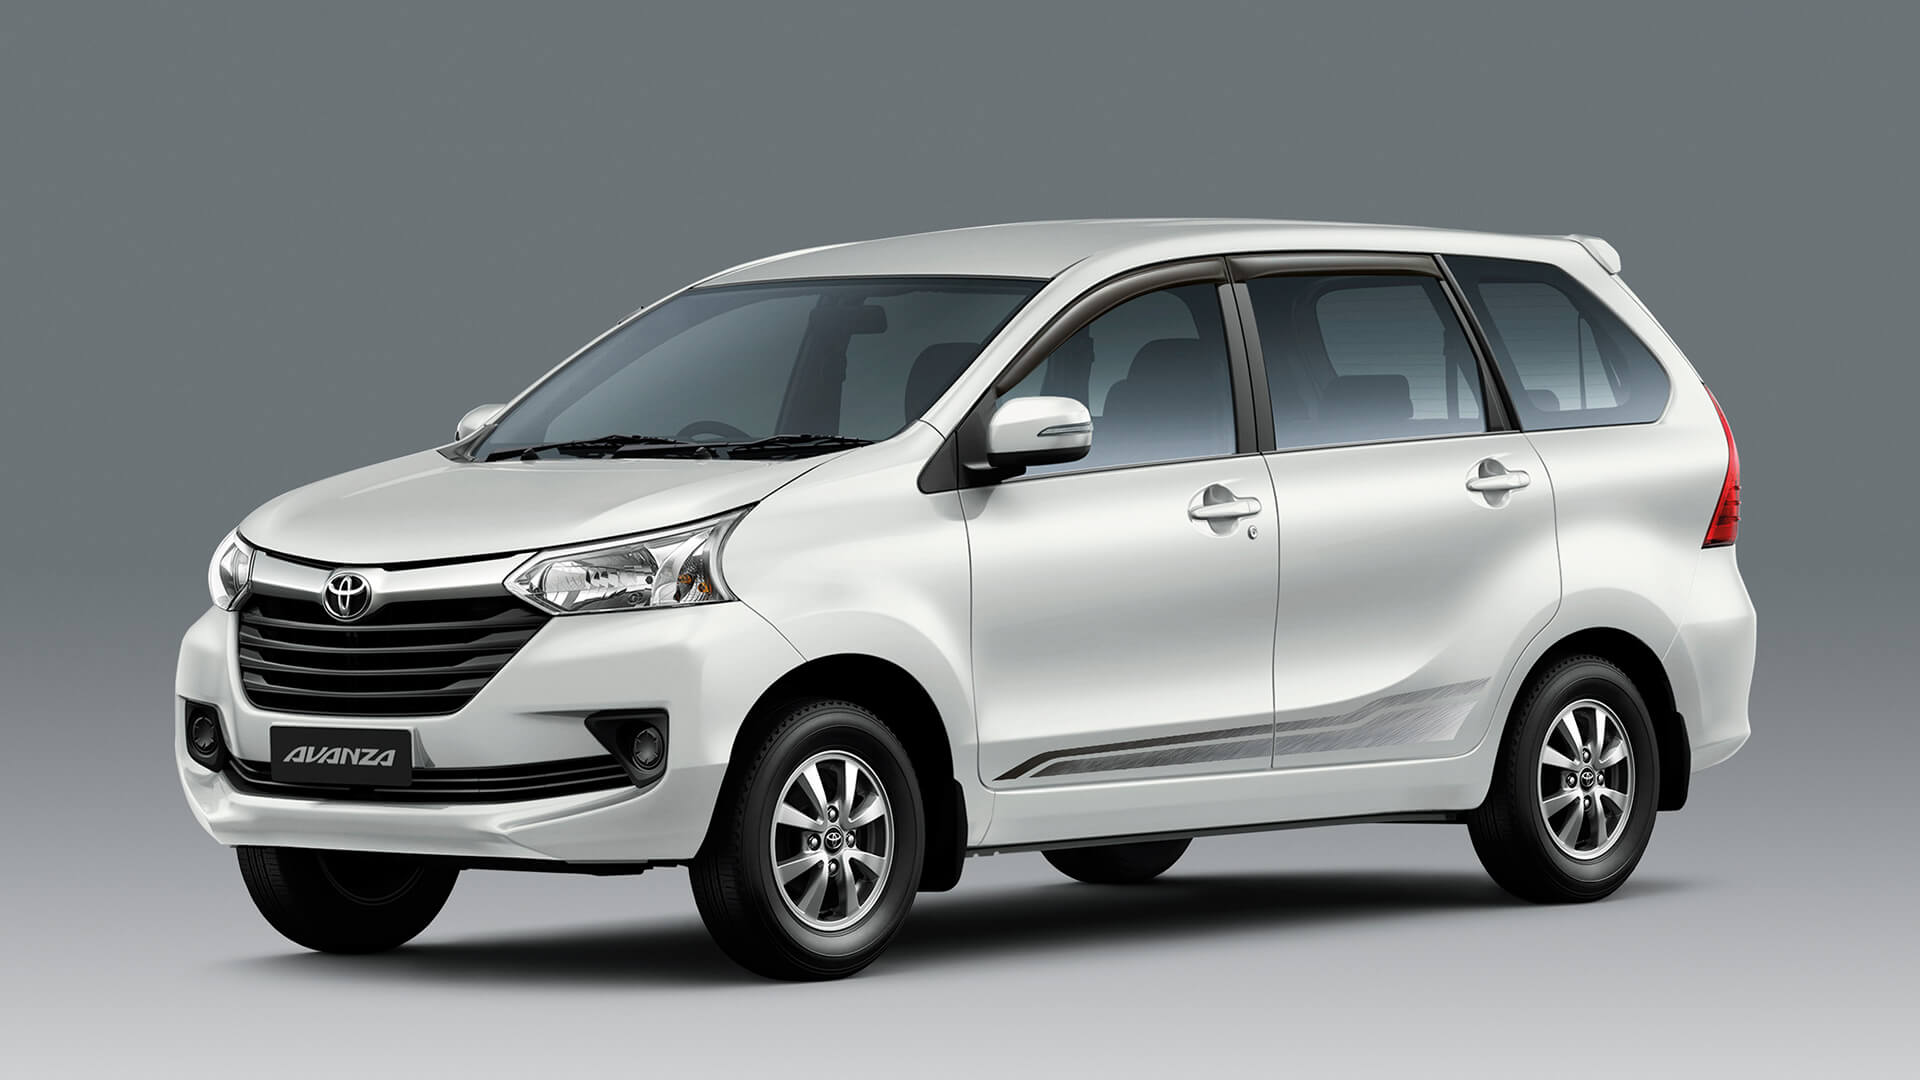 Toyota Avanza hd images and photos  Toyota Avanza new